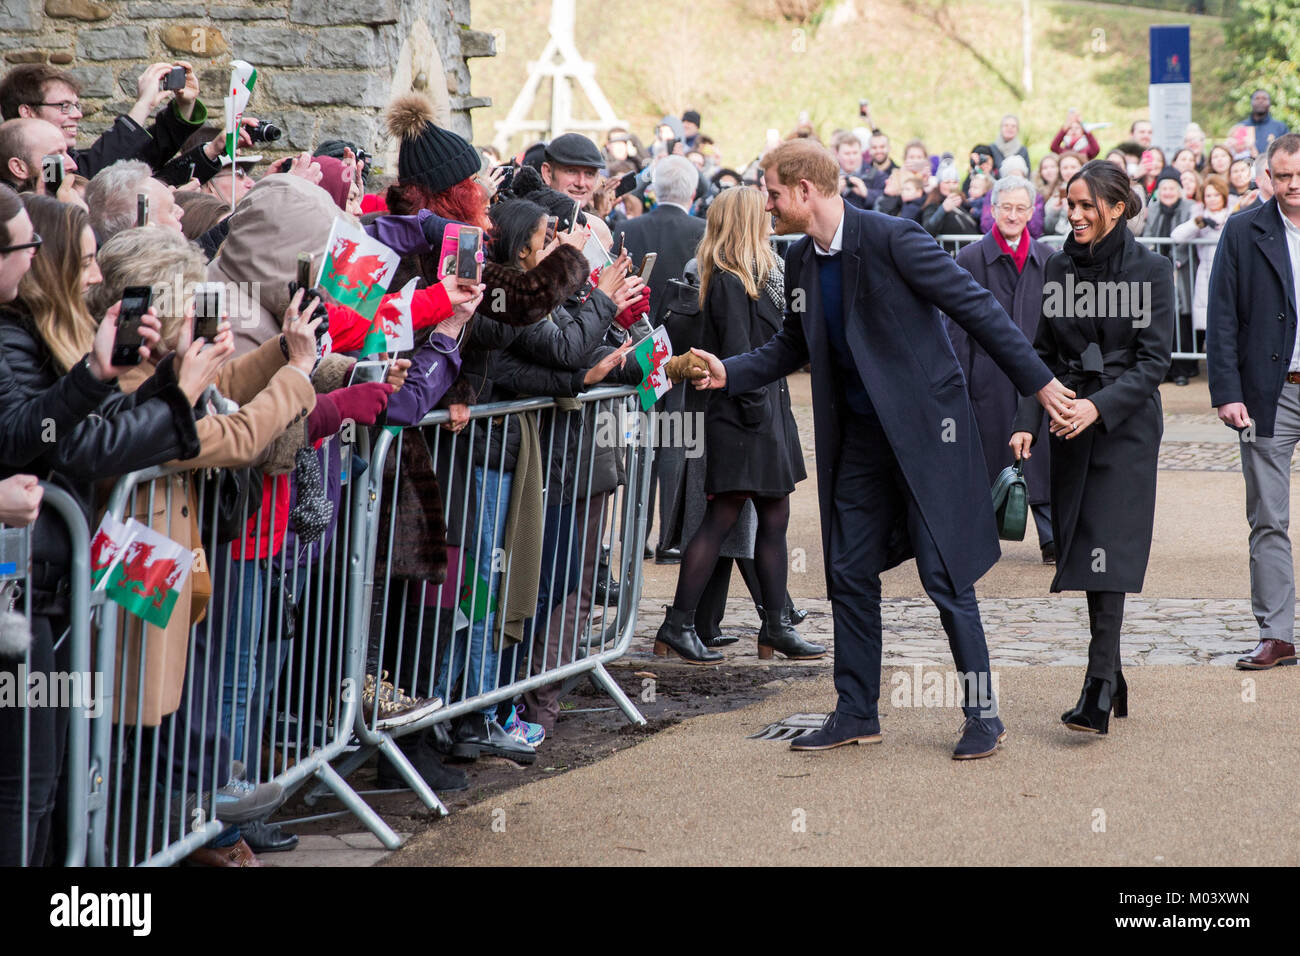 Cardiff, Wales, UK, January 18th 2018. Prince Harry and his fiance Meghan Markle arrive at Cardiff Castle. Credit: - Stock Image